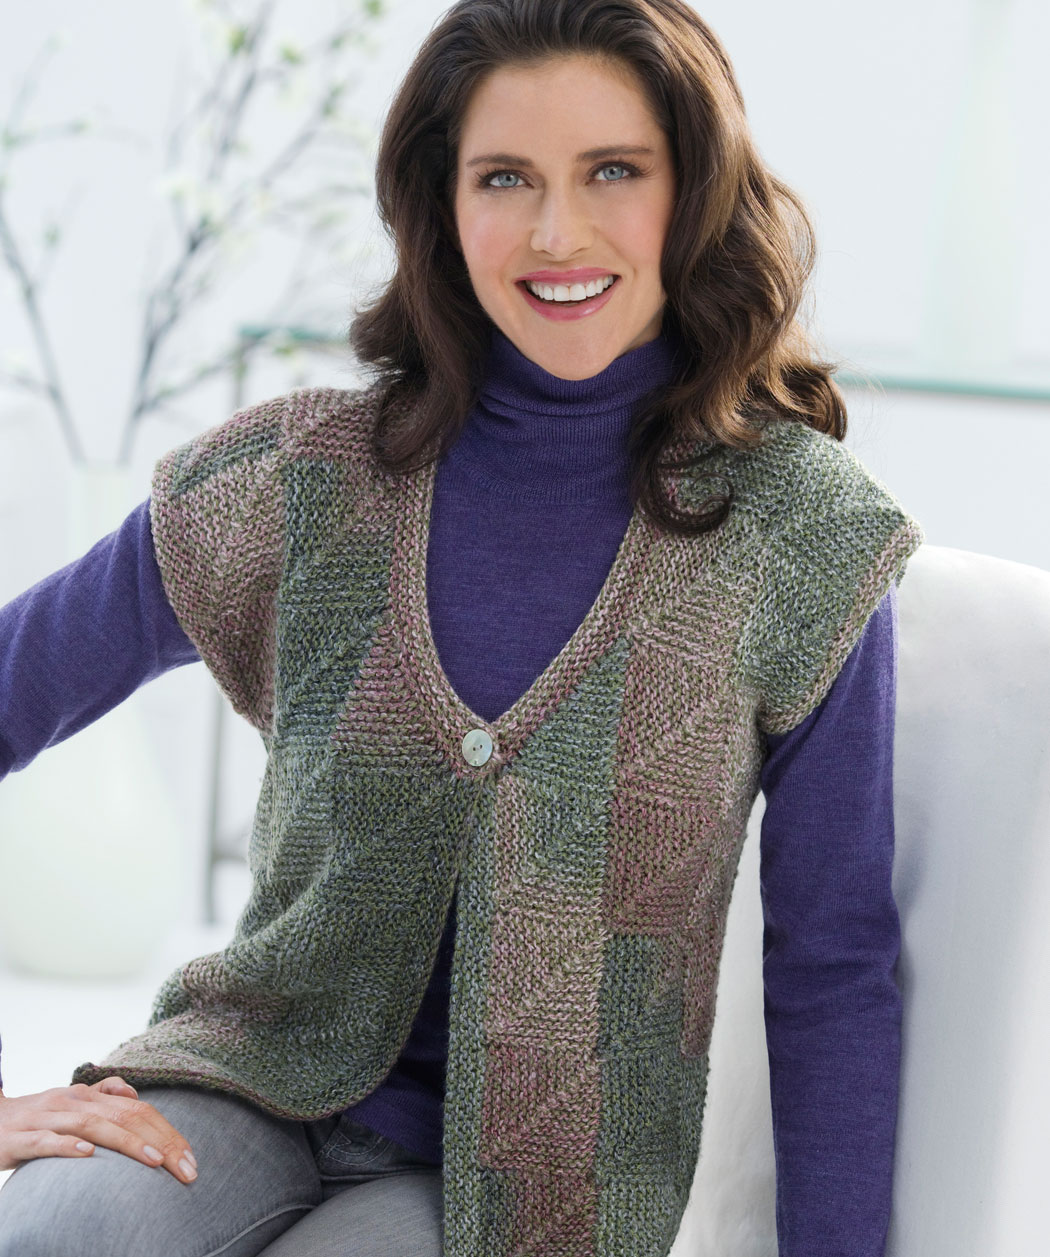 Knitting Pattern Vest : Knitted Vest Patterns A Knitting Blog